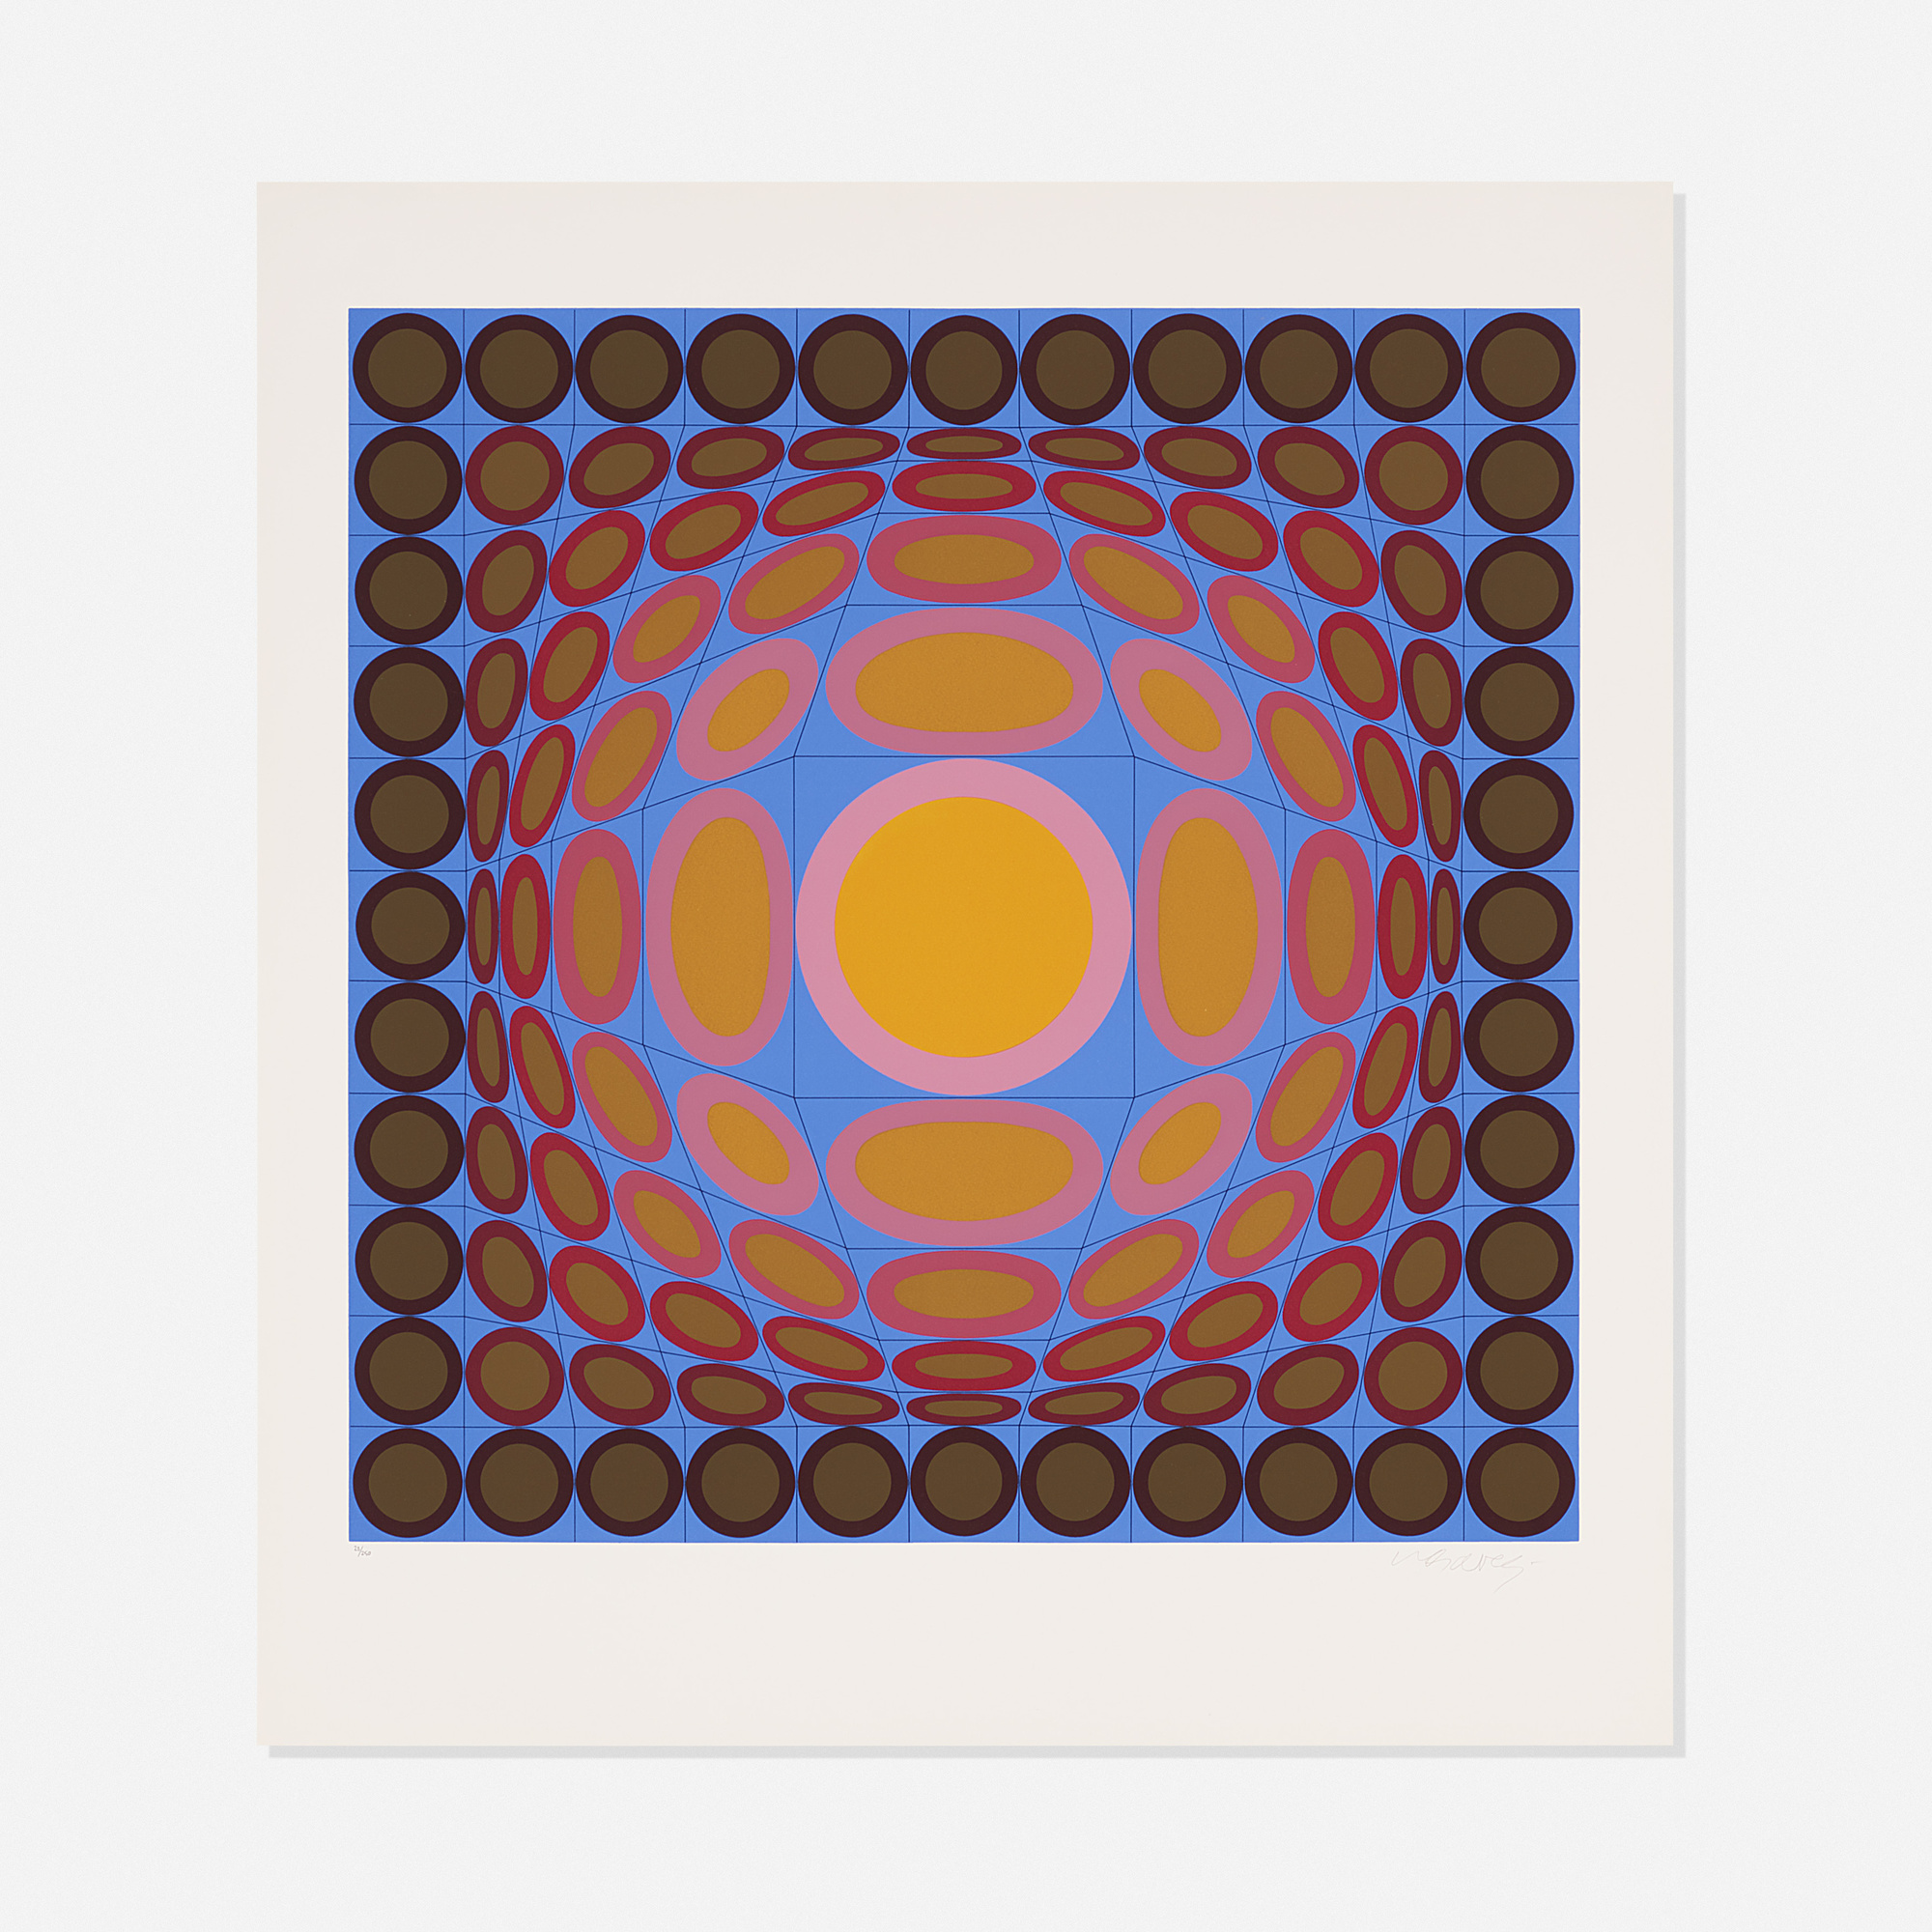 105: Victor Vasarely / Tri-Vega (1 of 2)